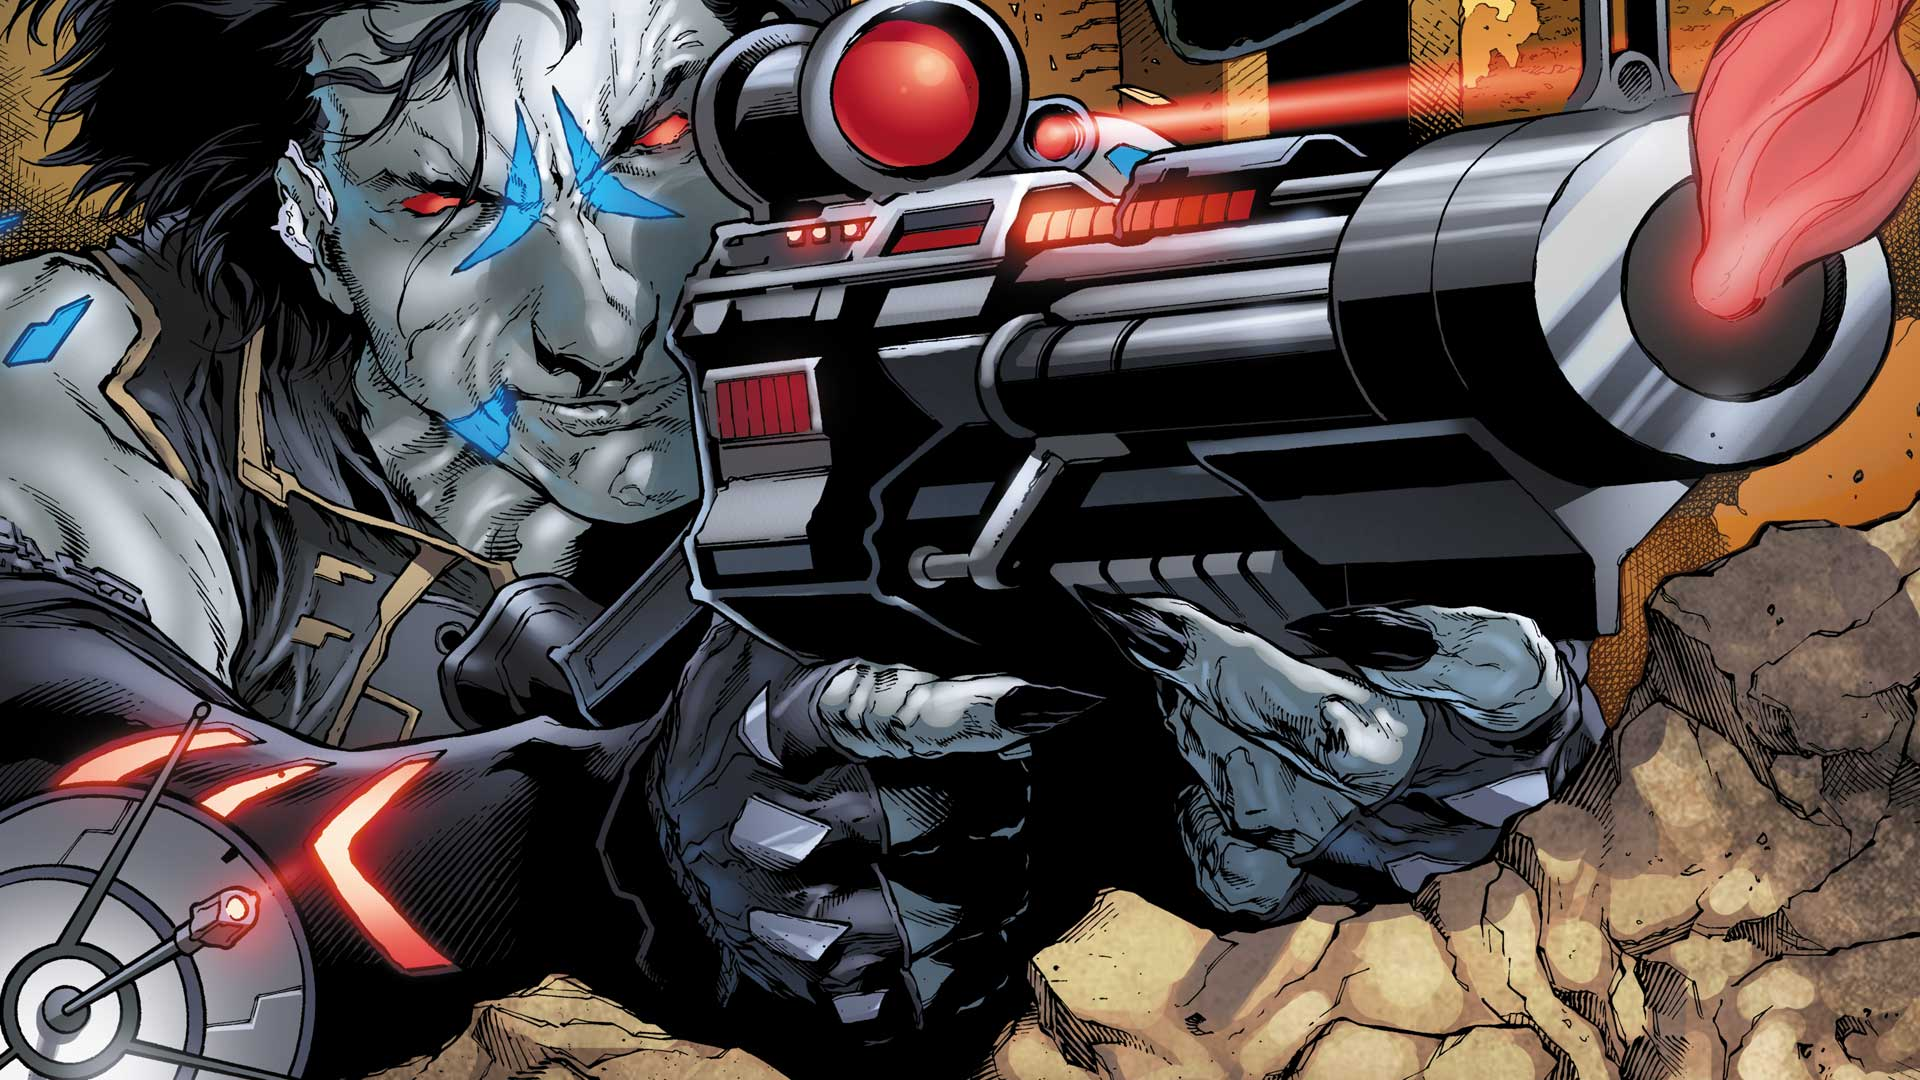 Blood Money Wallpaper Hd Lobo Dc